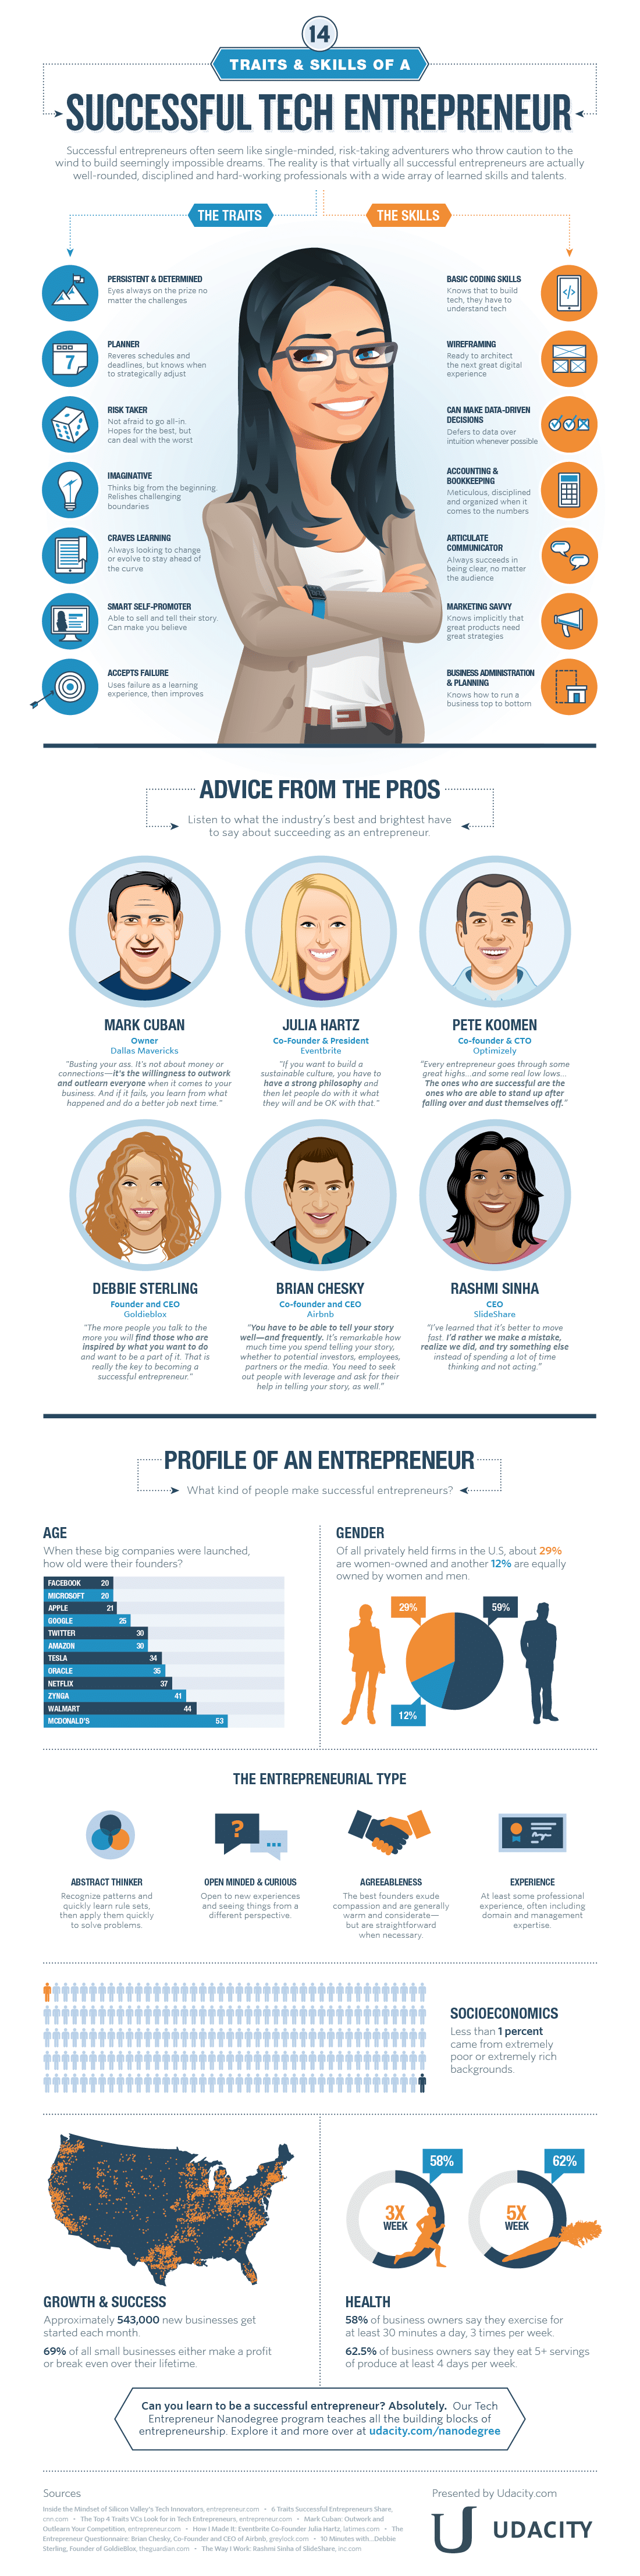 traits skills of a tech entrepreneur infographic udacity traits skills tech entrepreneur infographic udacity